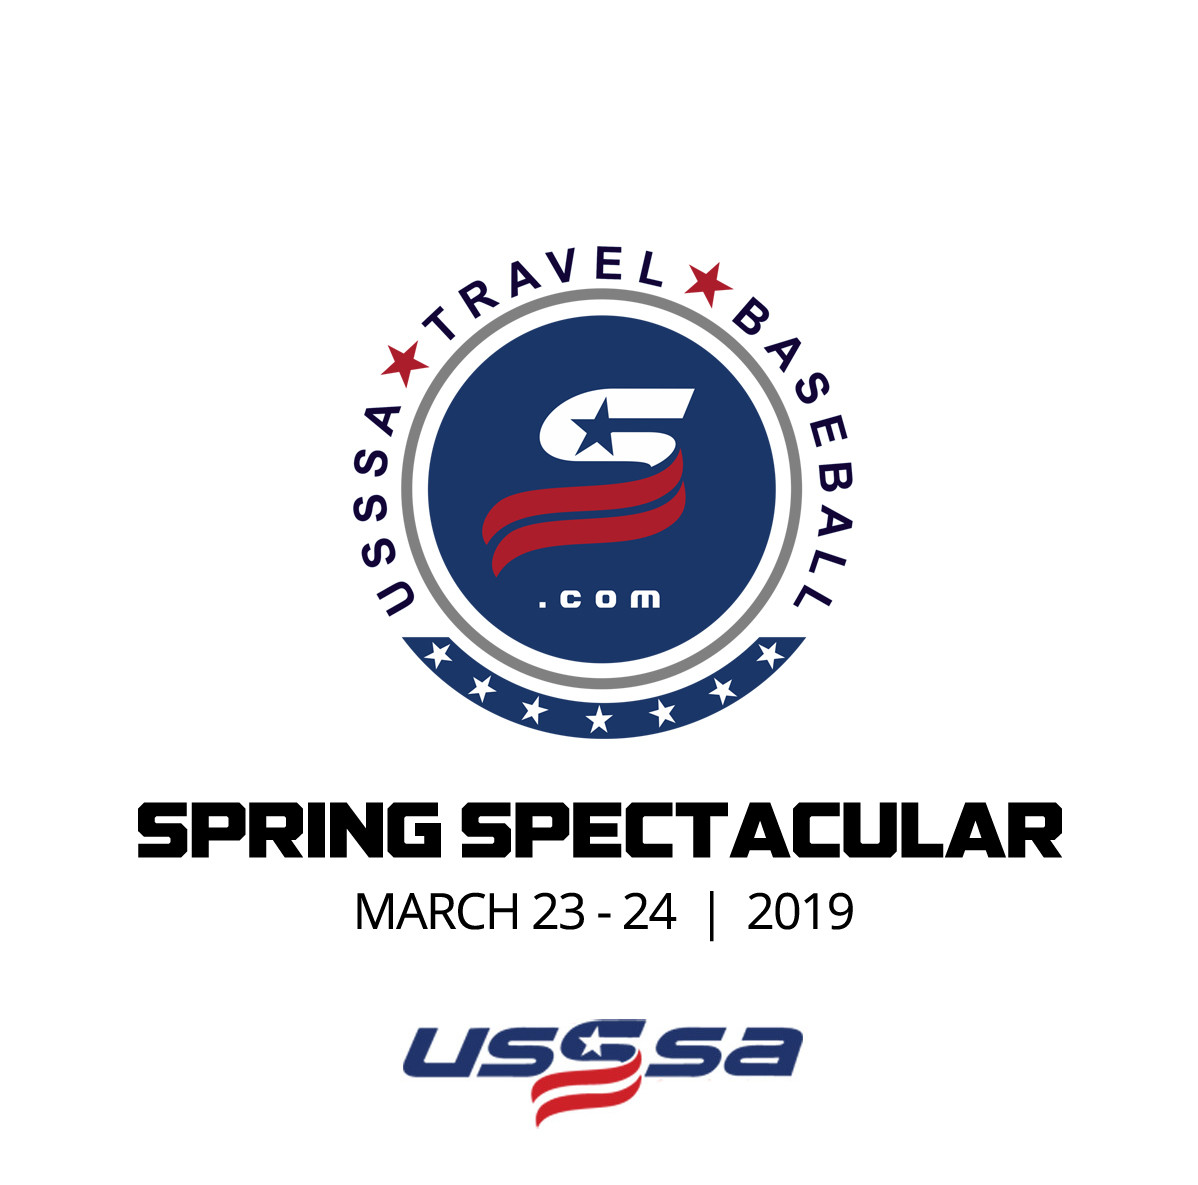 UPSTATE - SPRING SPECTACULAR